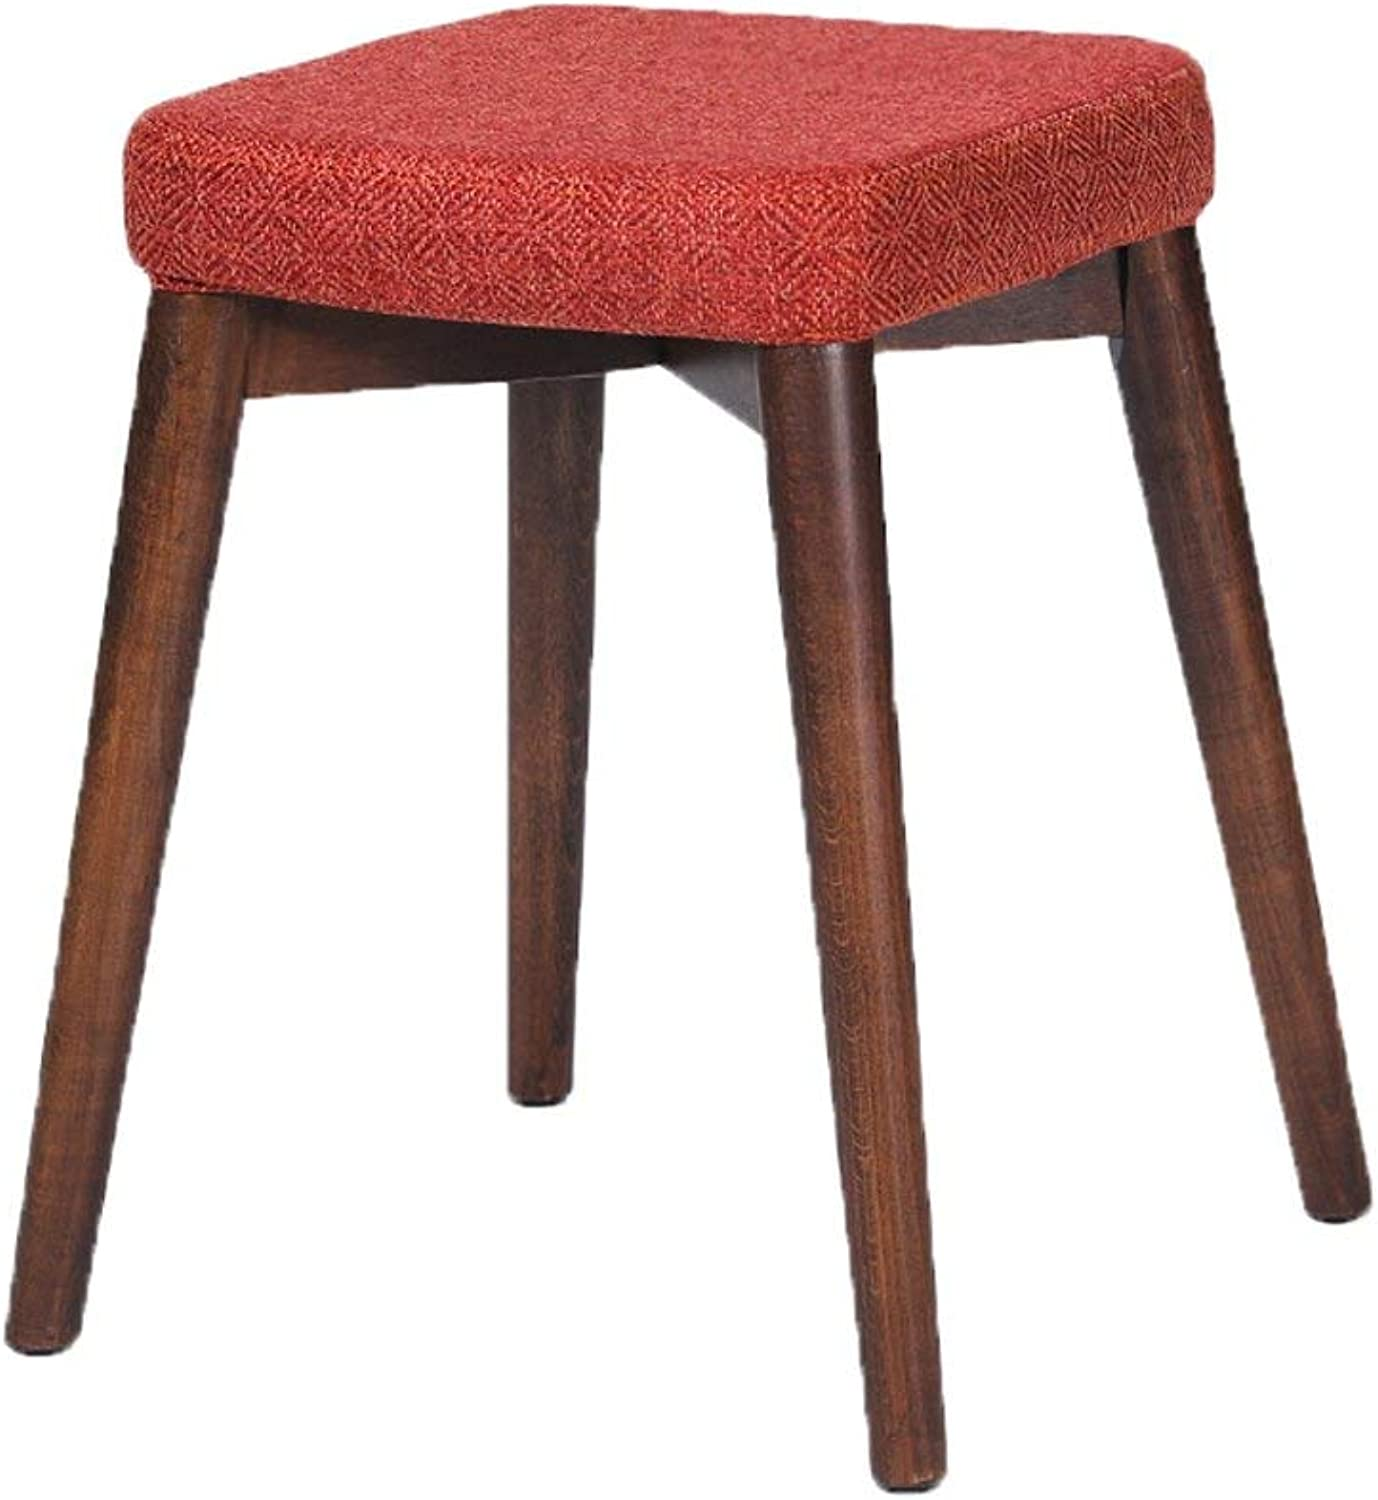 MONFS HOME Solid wood fabric stool home dining stool fashion creative makeup dressing stool Nordic small bench - small stool (color   B)